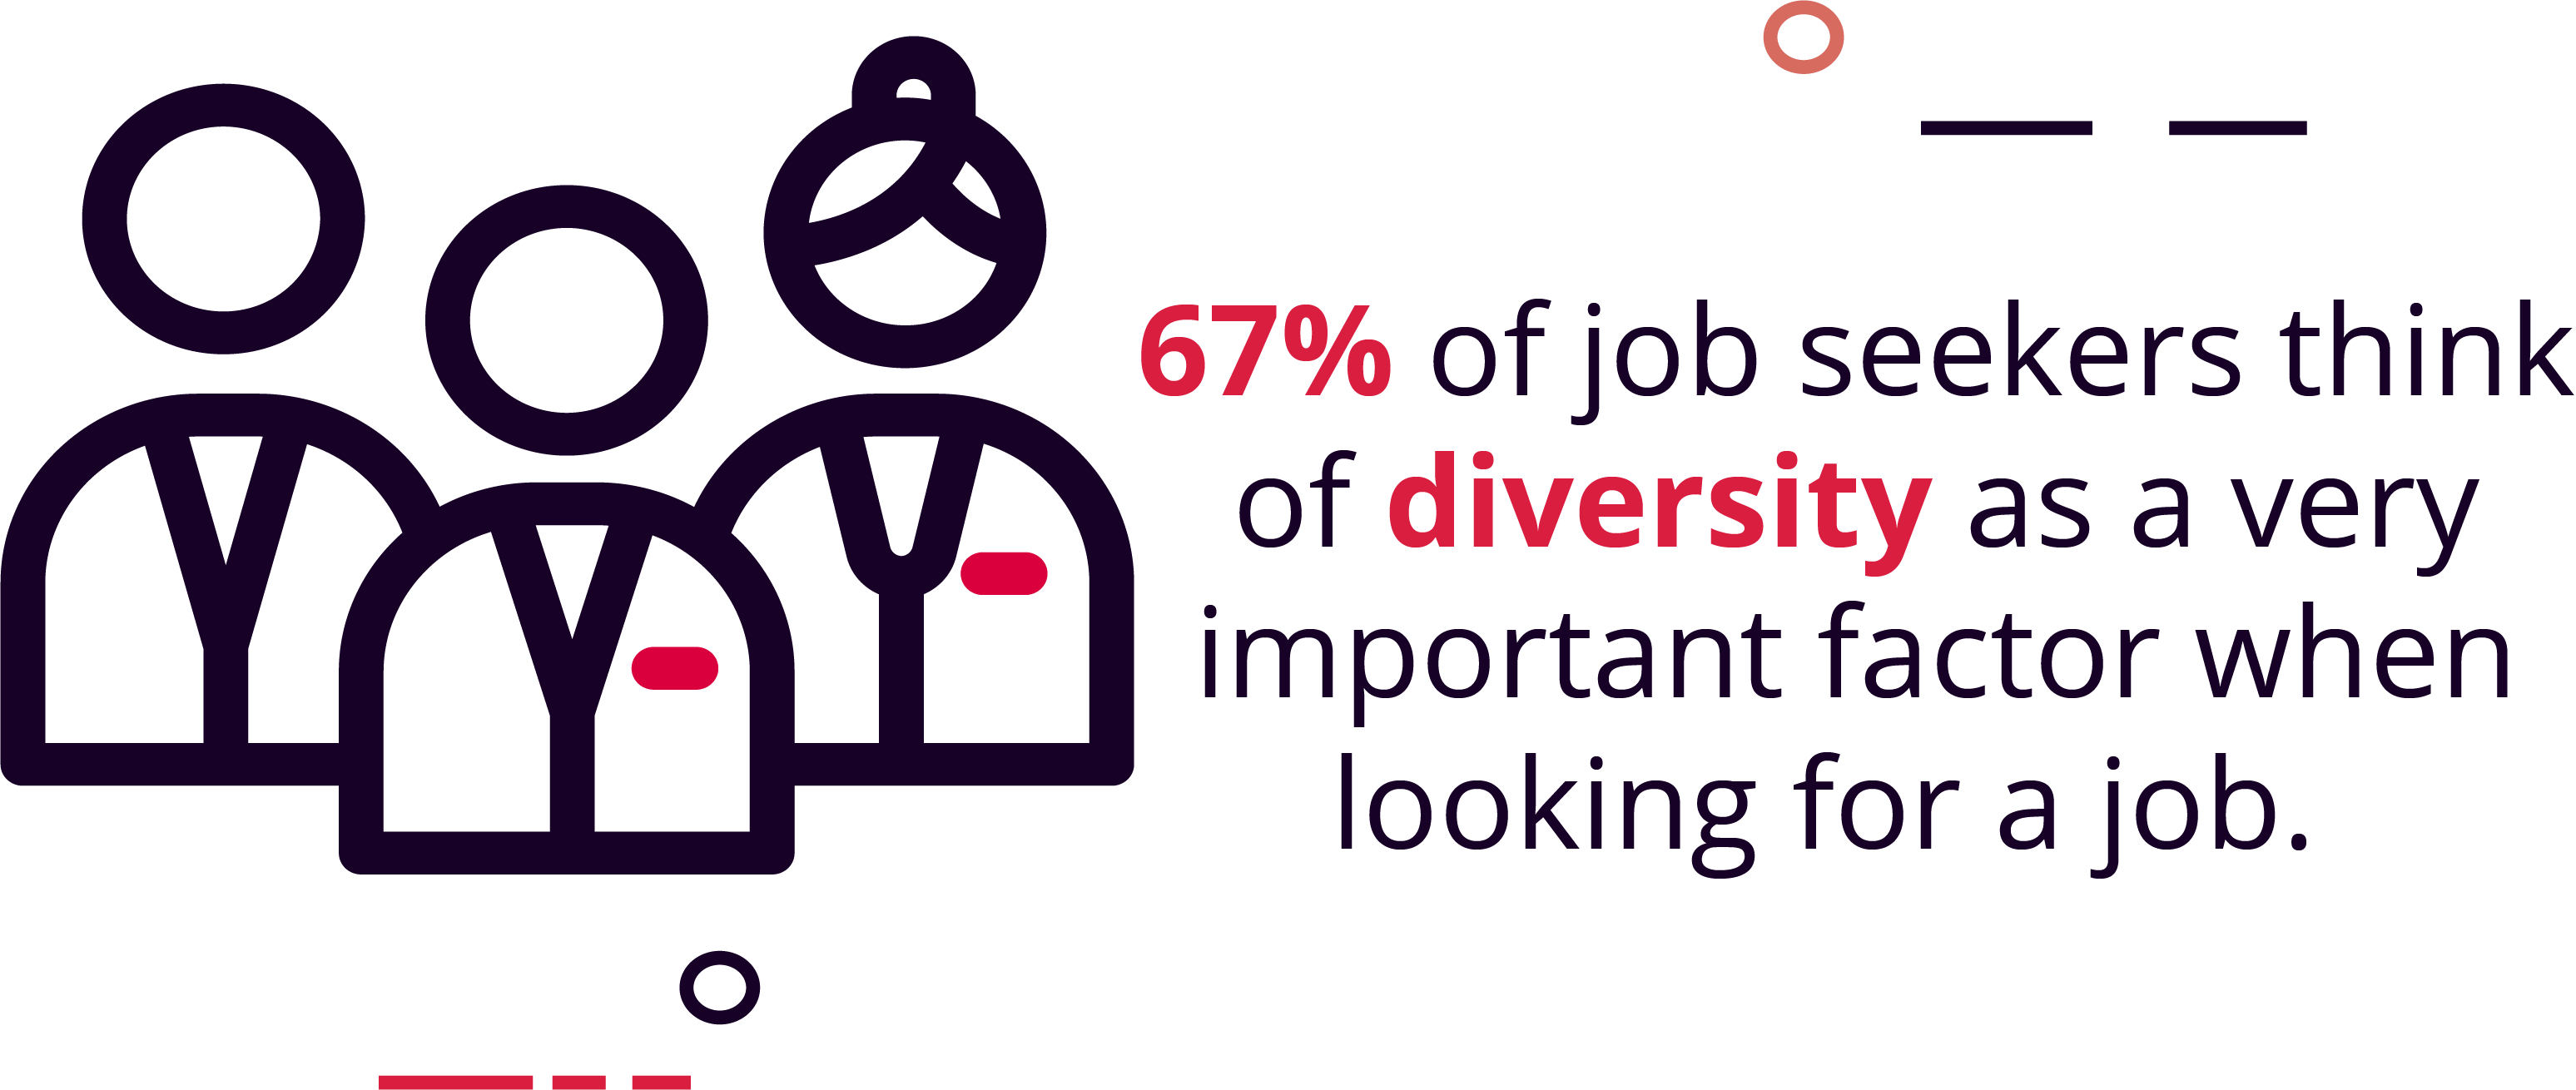 67% of candidates said that a diverse team is an important job factor